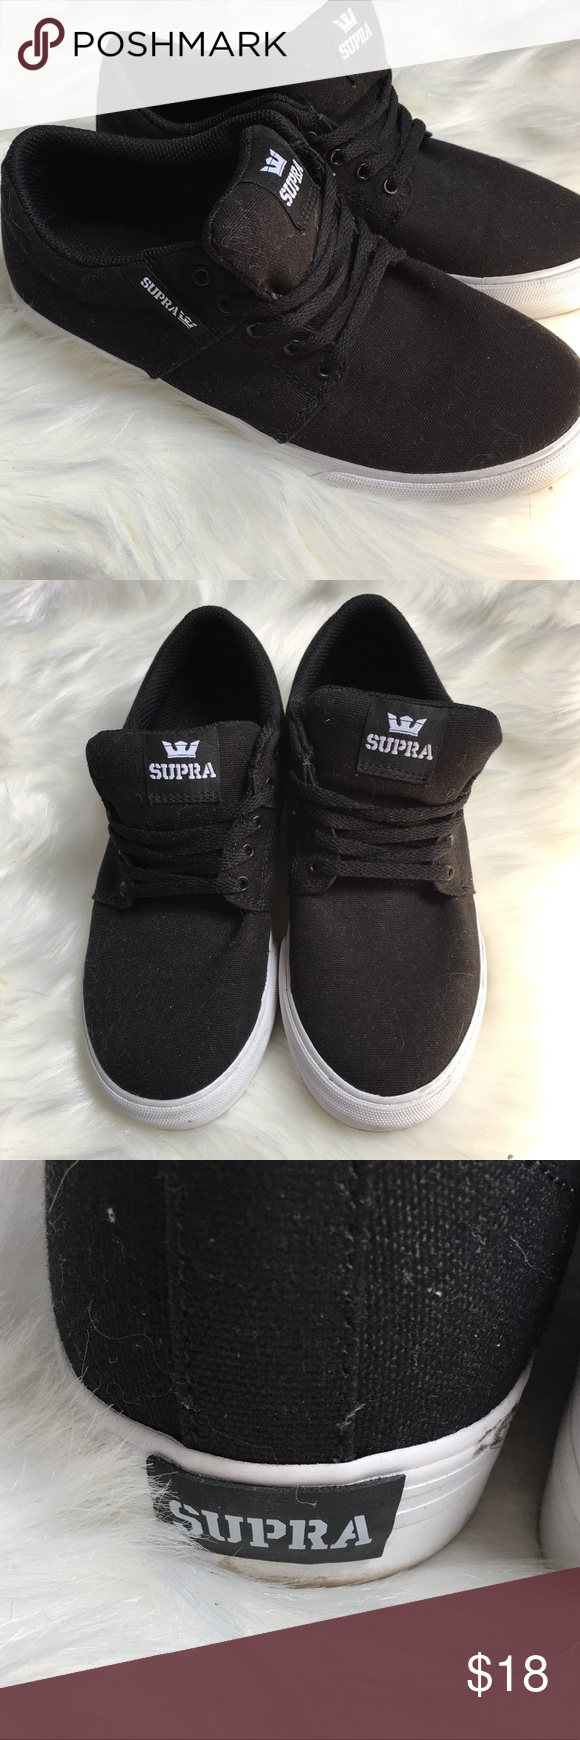 765180f2592e Supra Black Sneakers Your go to basic black sneakers! Comfy